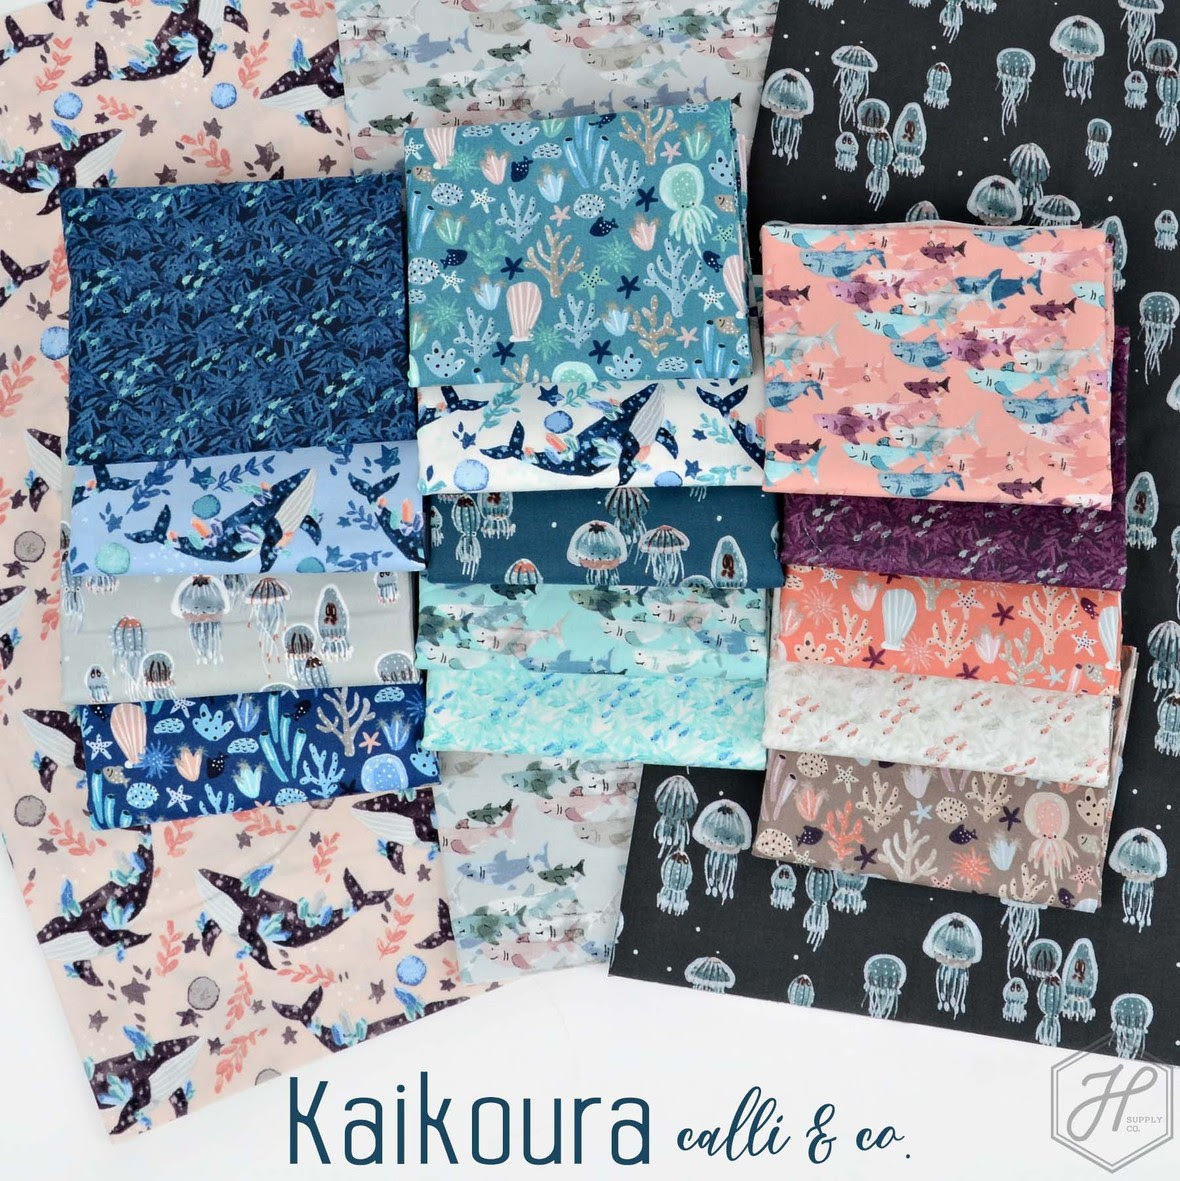 Kaikoura Fabric Cotton and Steel at Hawthorne